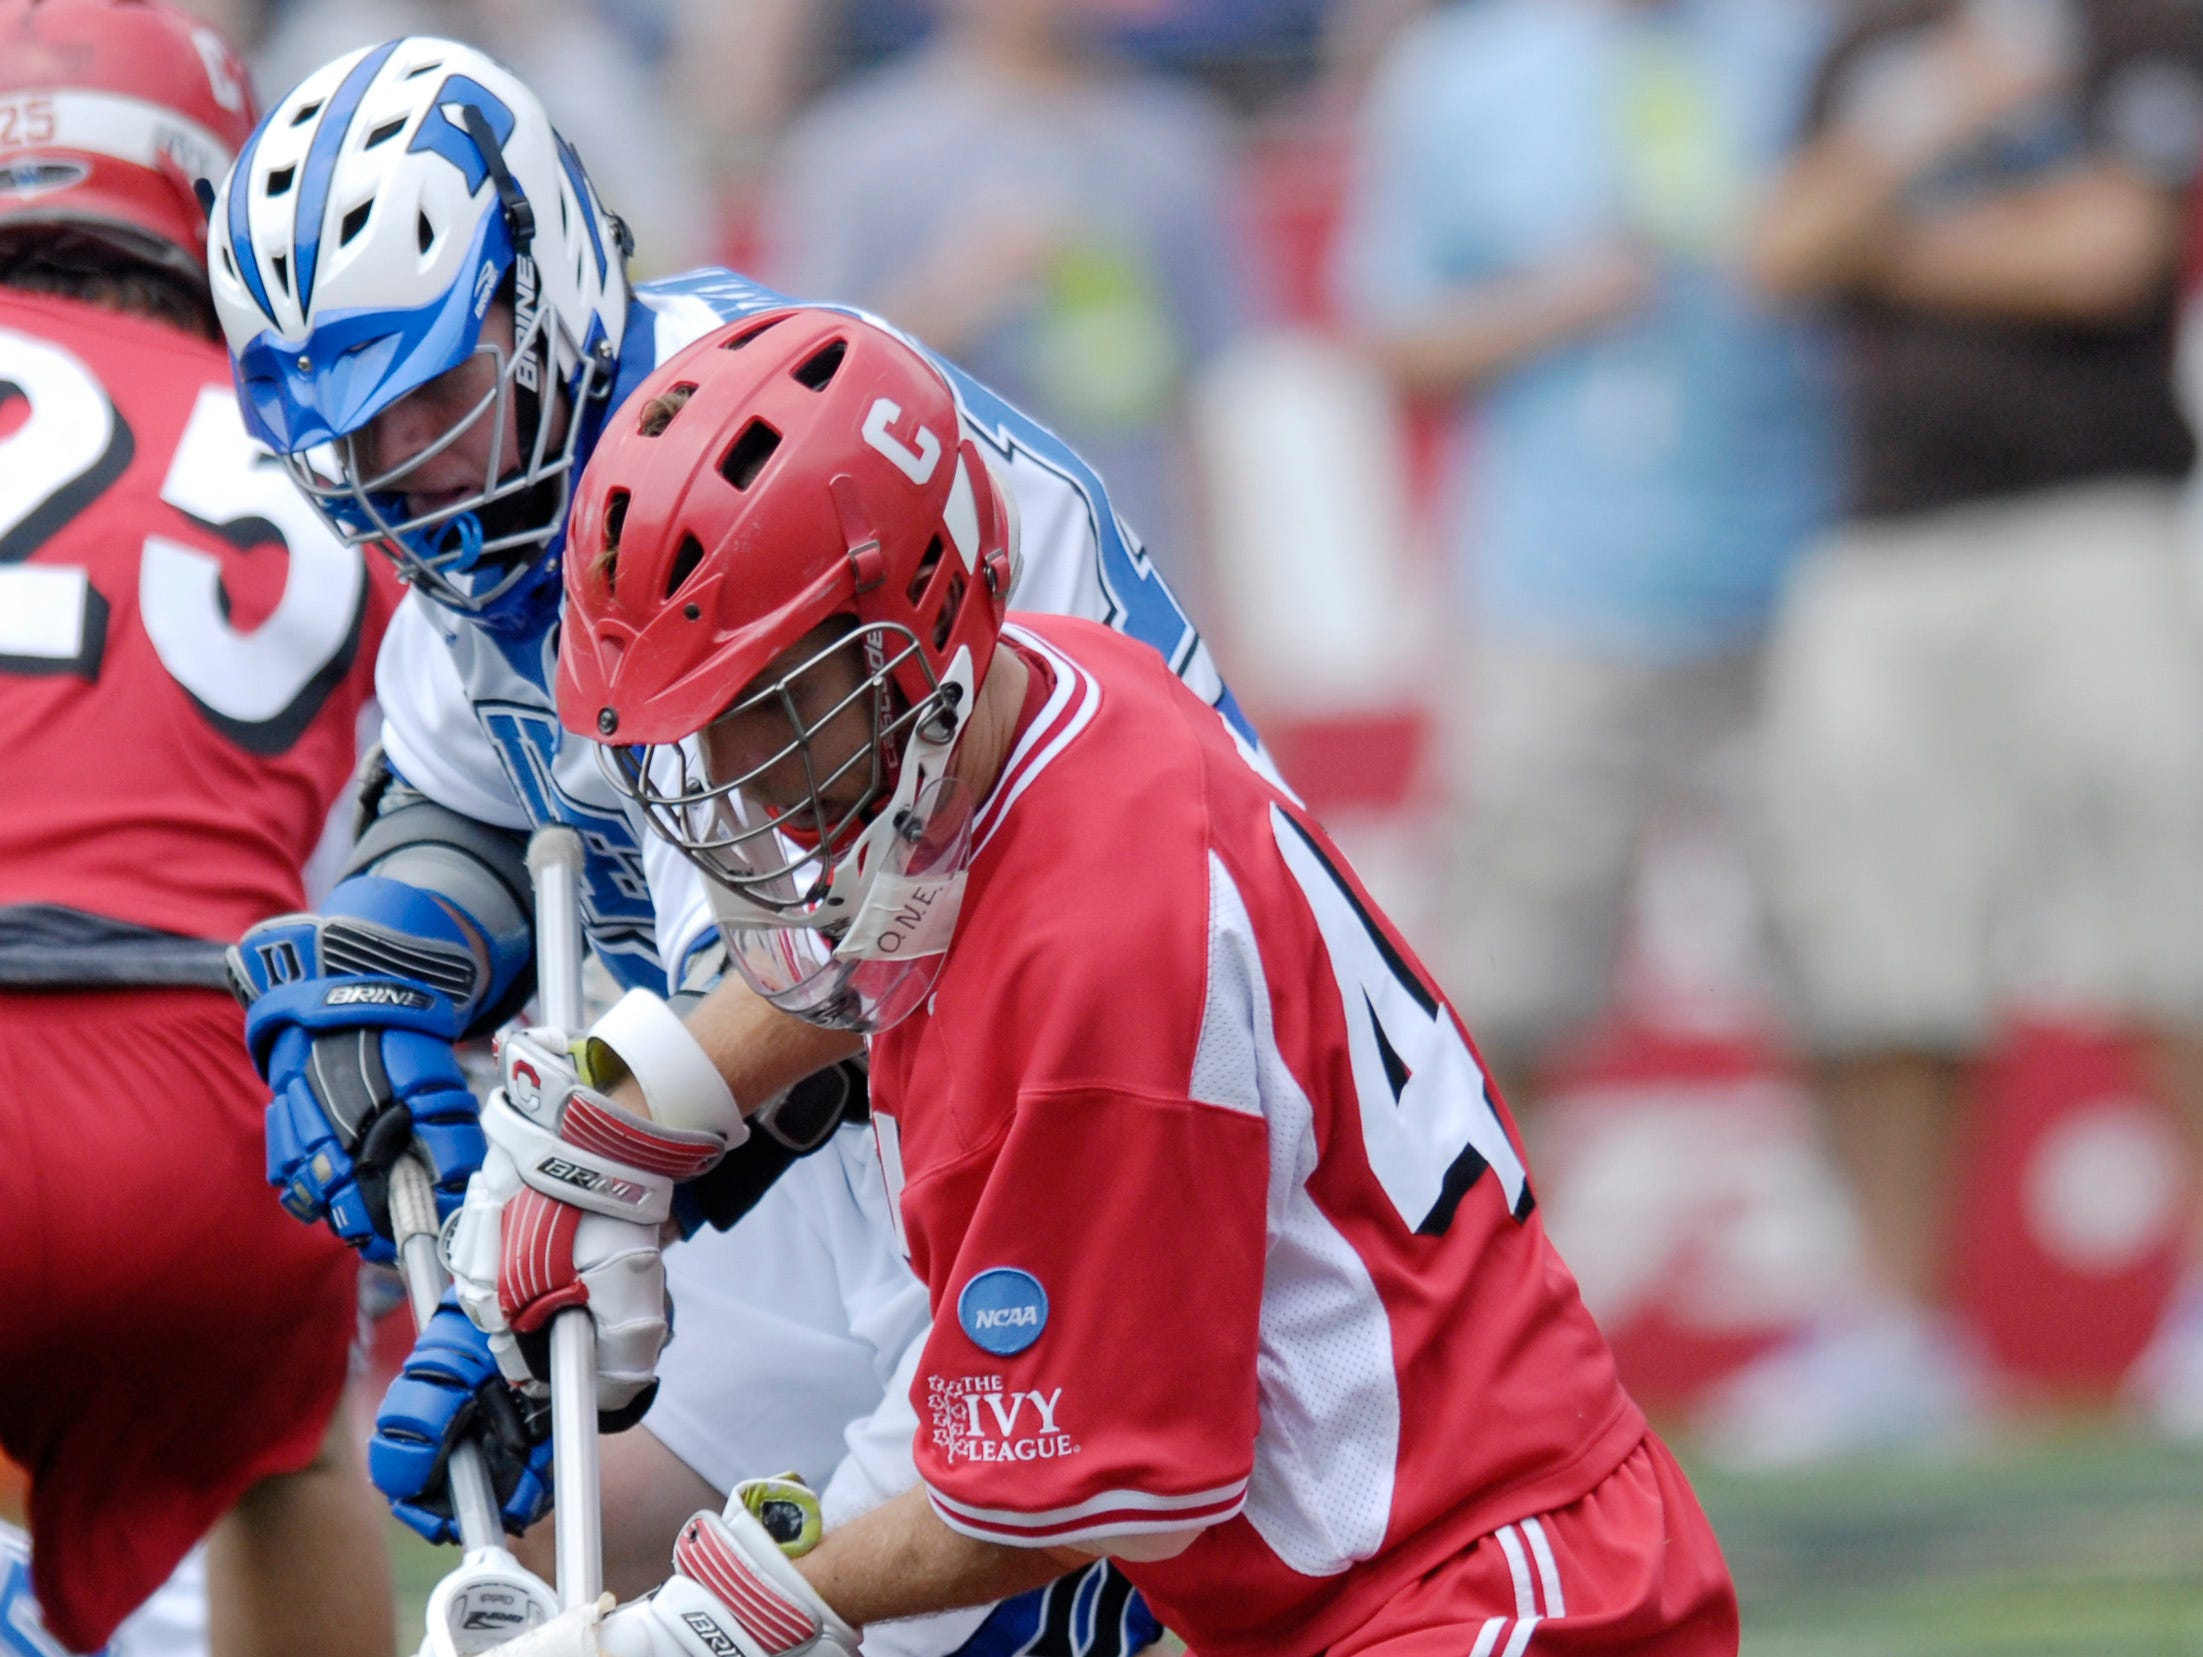 Duke's Max Quinzani, left, battles for the ball against Cornell's Matt McMonagle, right, during a division one NCAA lacrosse semifinal game, Saturday, May 26, 2007, in Baltimore.